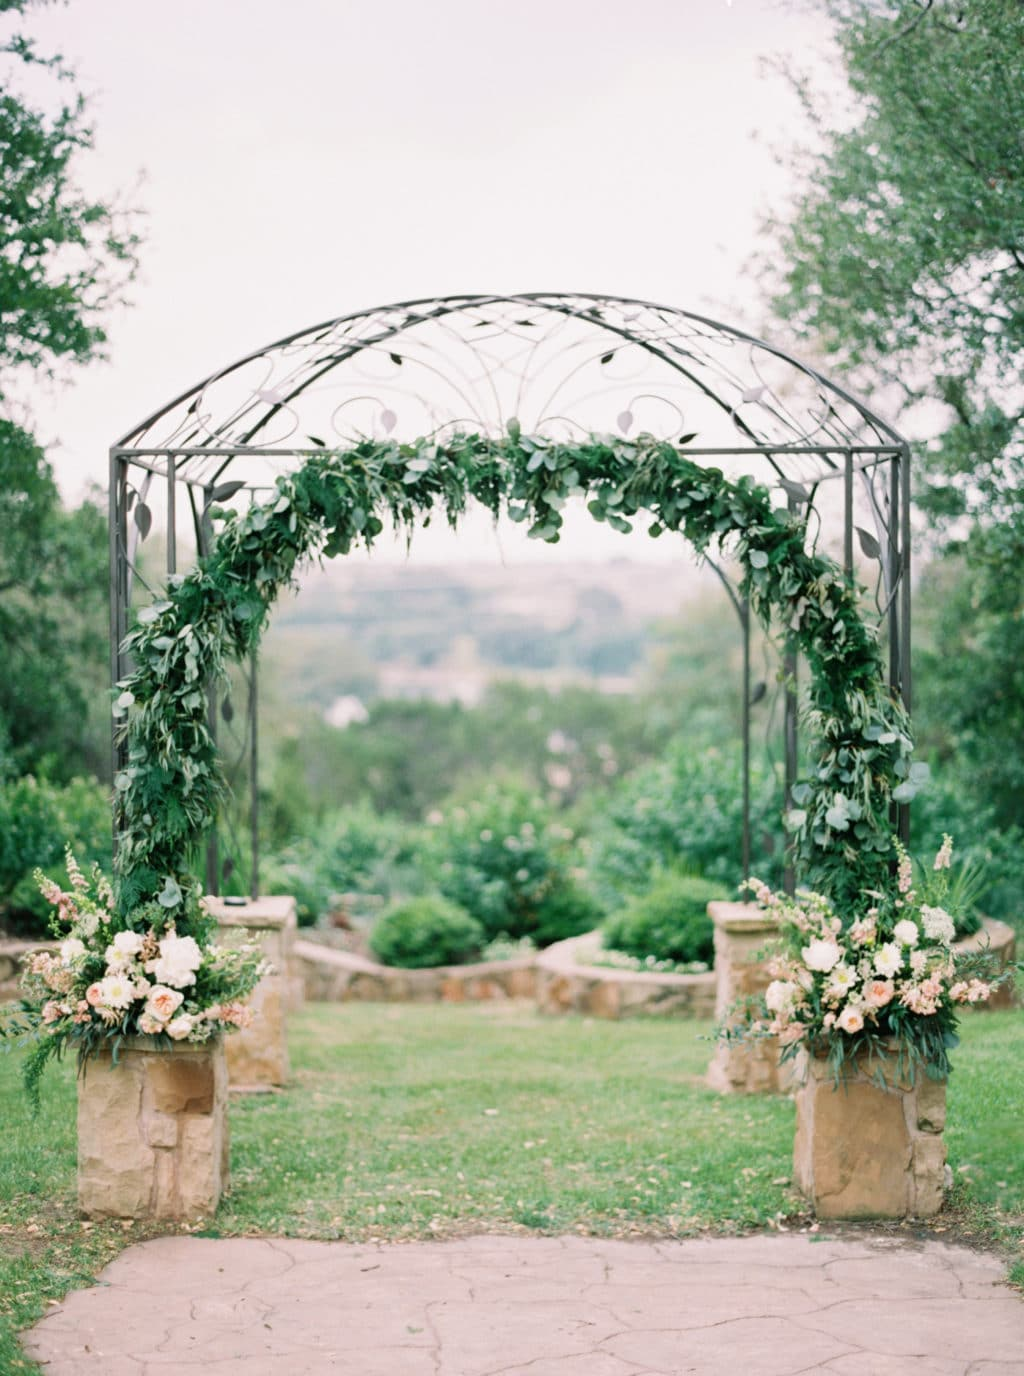 An intricate iron wedding arbor is decorated with an arch of greenery and muted florals at Kindred Oaks in Georgetown, Texas. Photo by Jenna McElroy Photography.